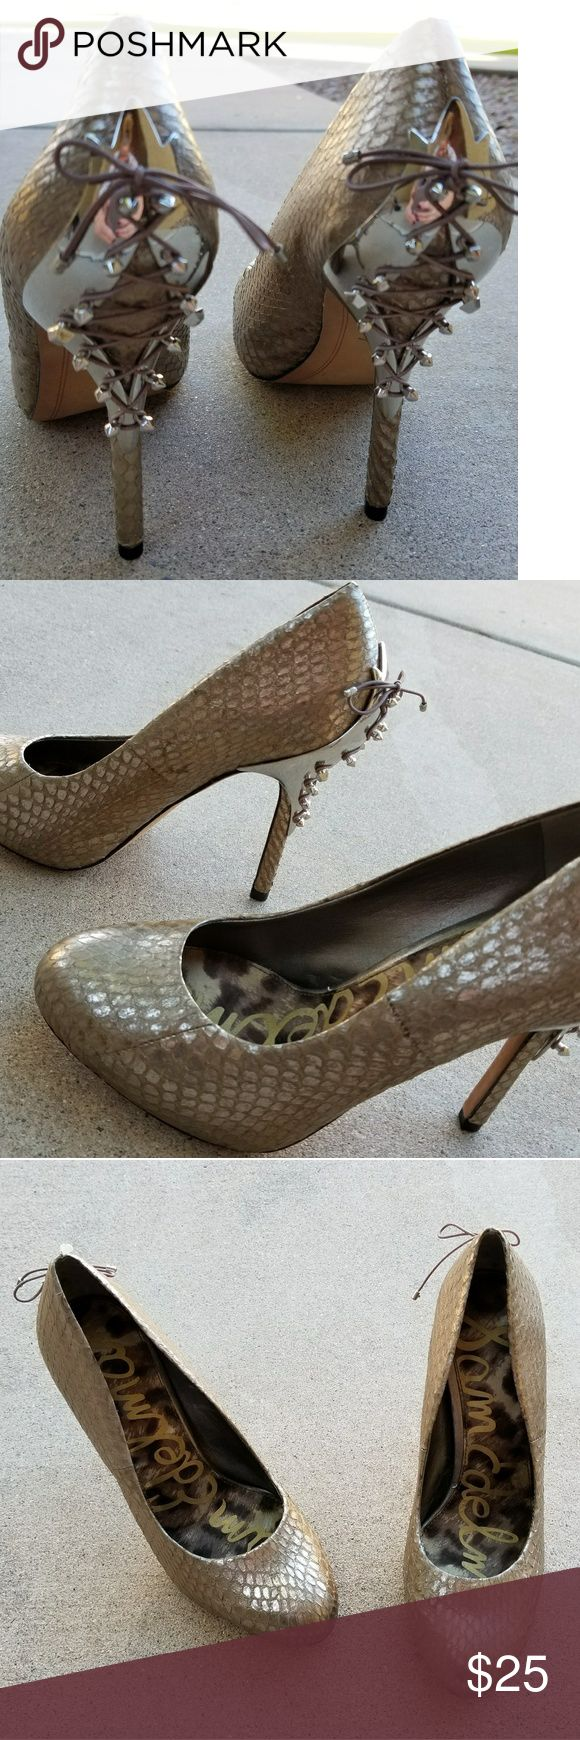 "4"" Sam Edelman Gold Faux Snakeskin Heels These shoes are so hot! The studed lace up back is such a sexy detail, the shoe is a gold faux snakeskin print. 70% off price from Nordstrom Rack is $51 Sam Edelman Shoes Heels"